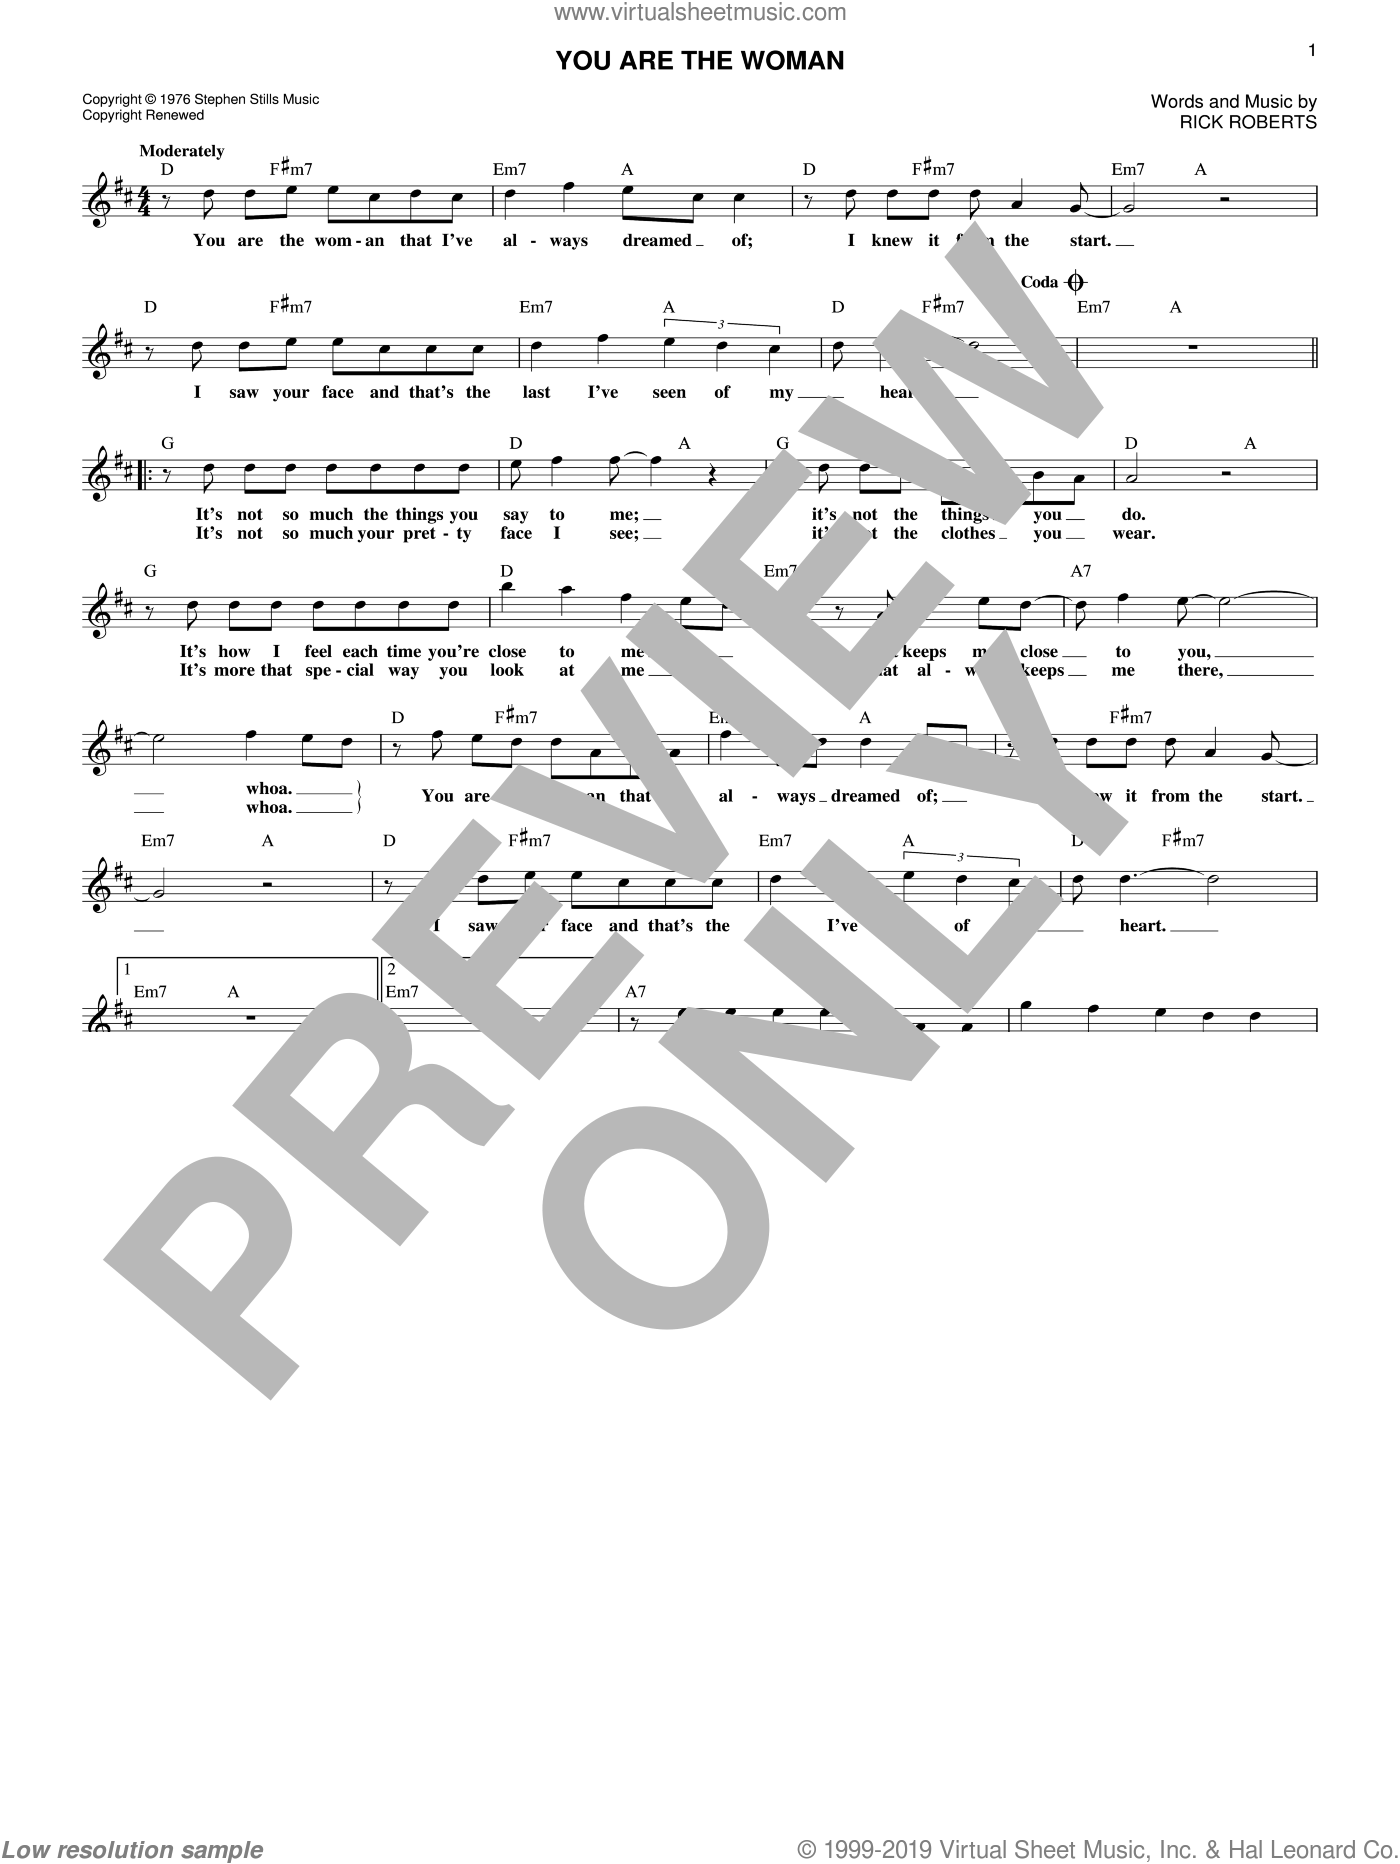 You Are The Woman sheet music for voice and other instruments (fake book) by Firefall and Rick Roberts, intermediate skill level